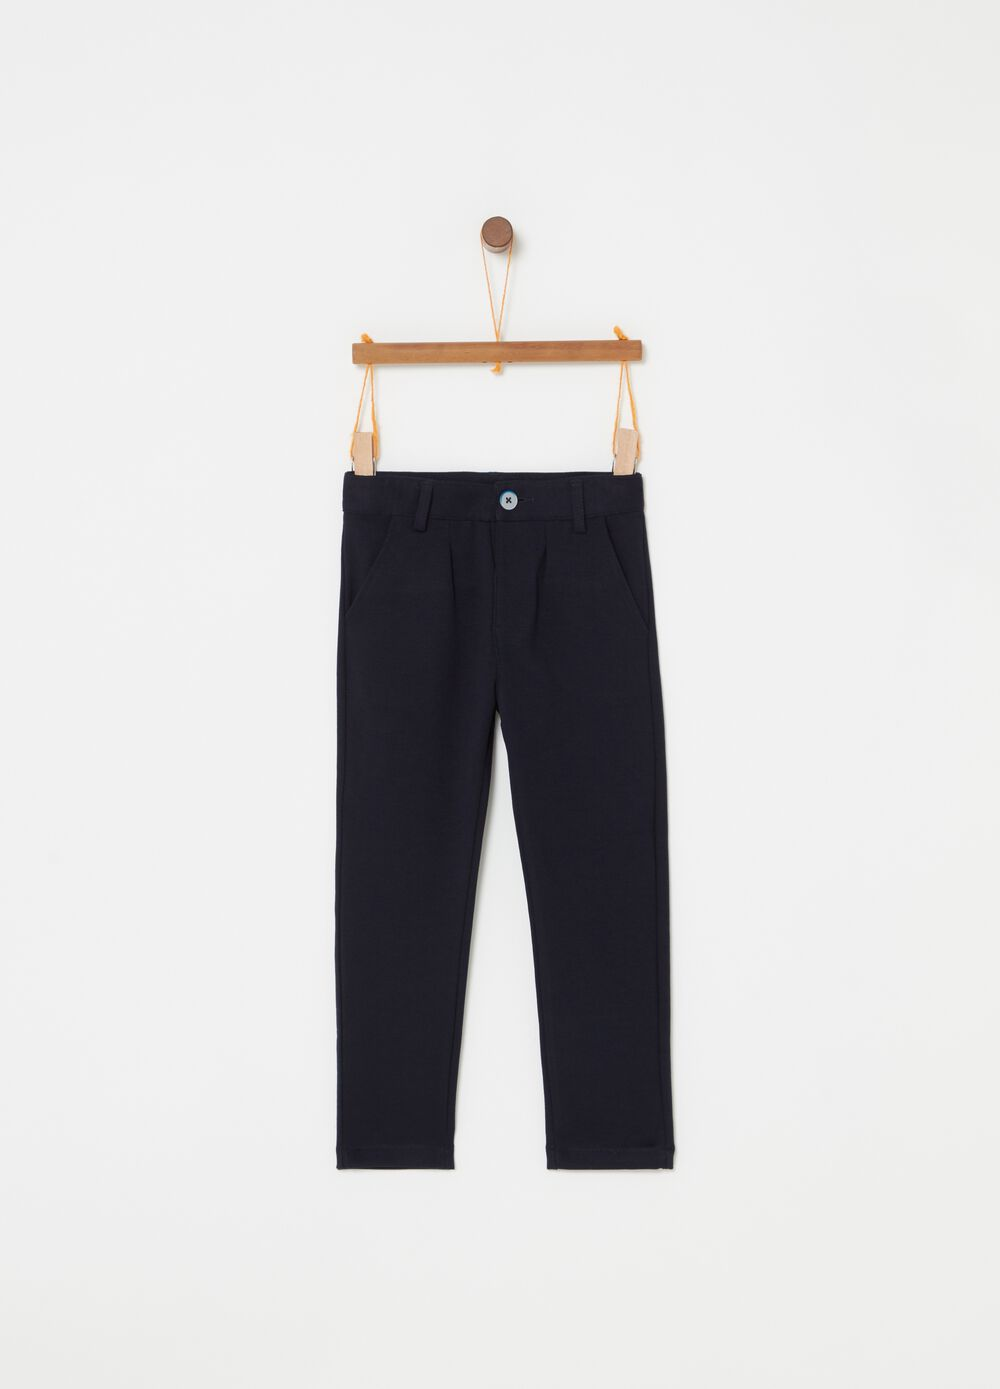 Stretch trousers with pockets and button